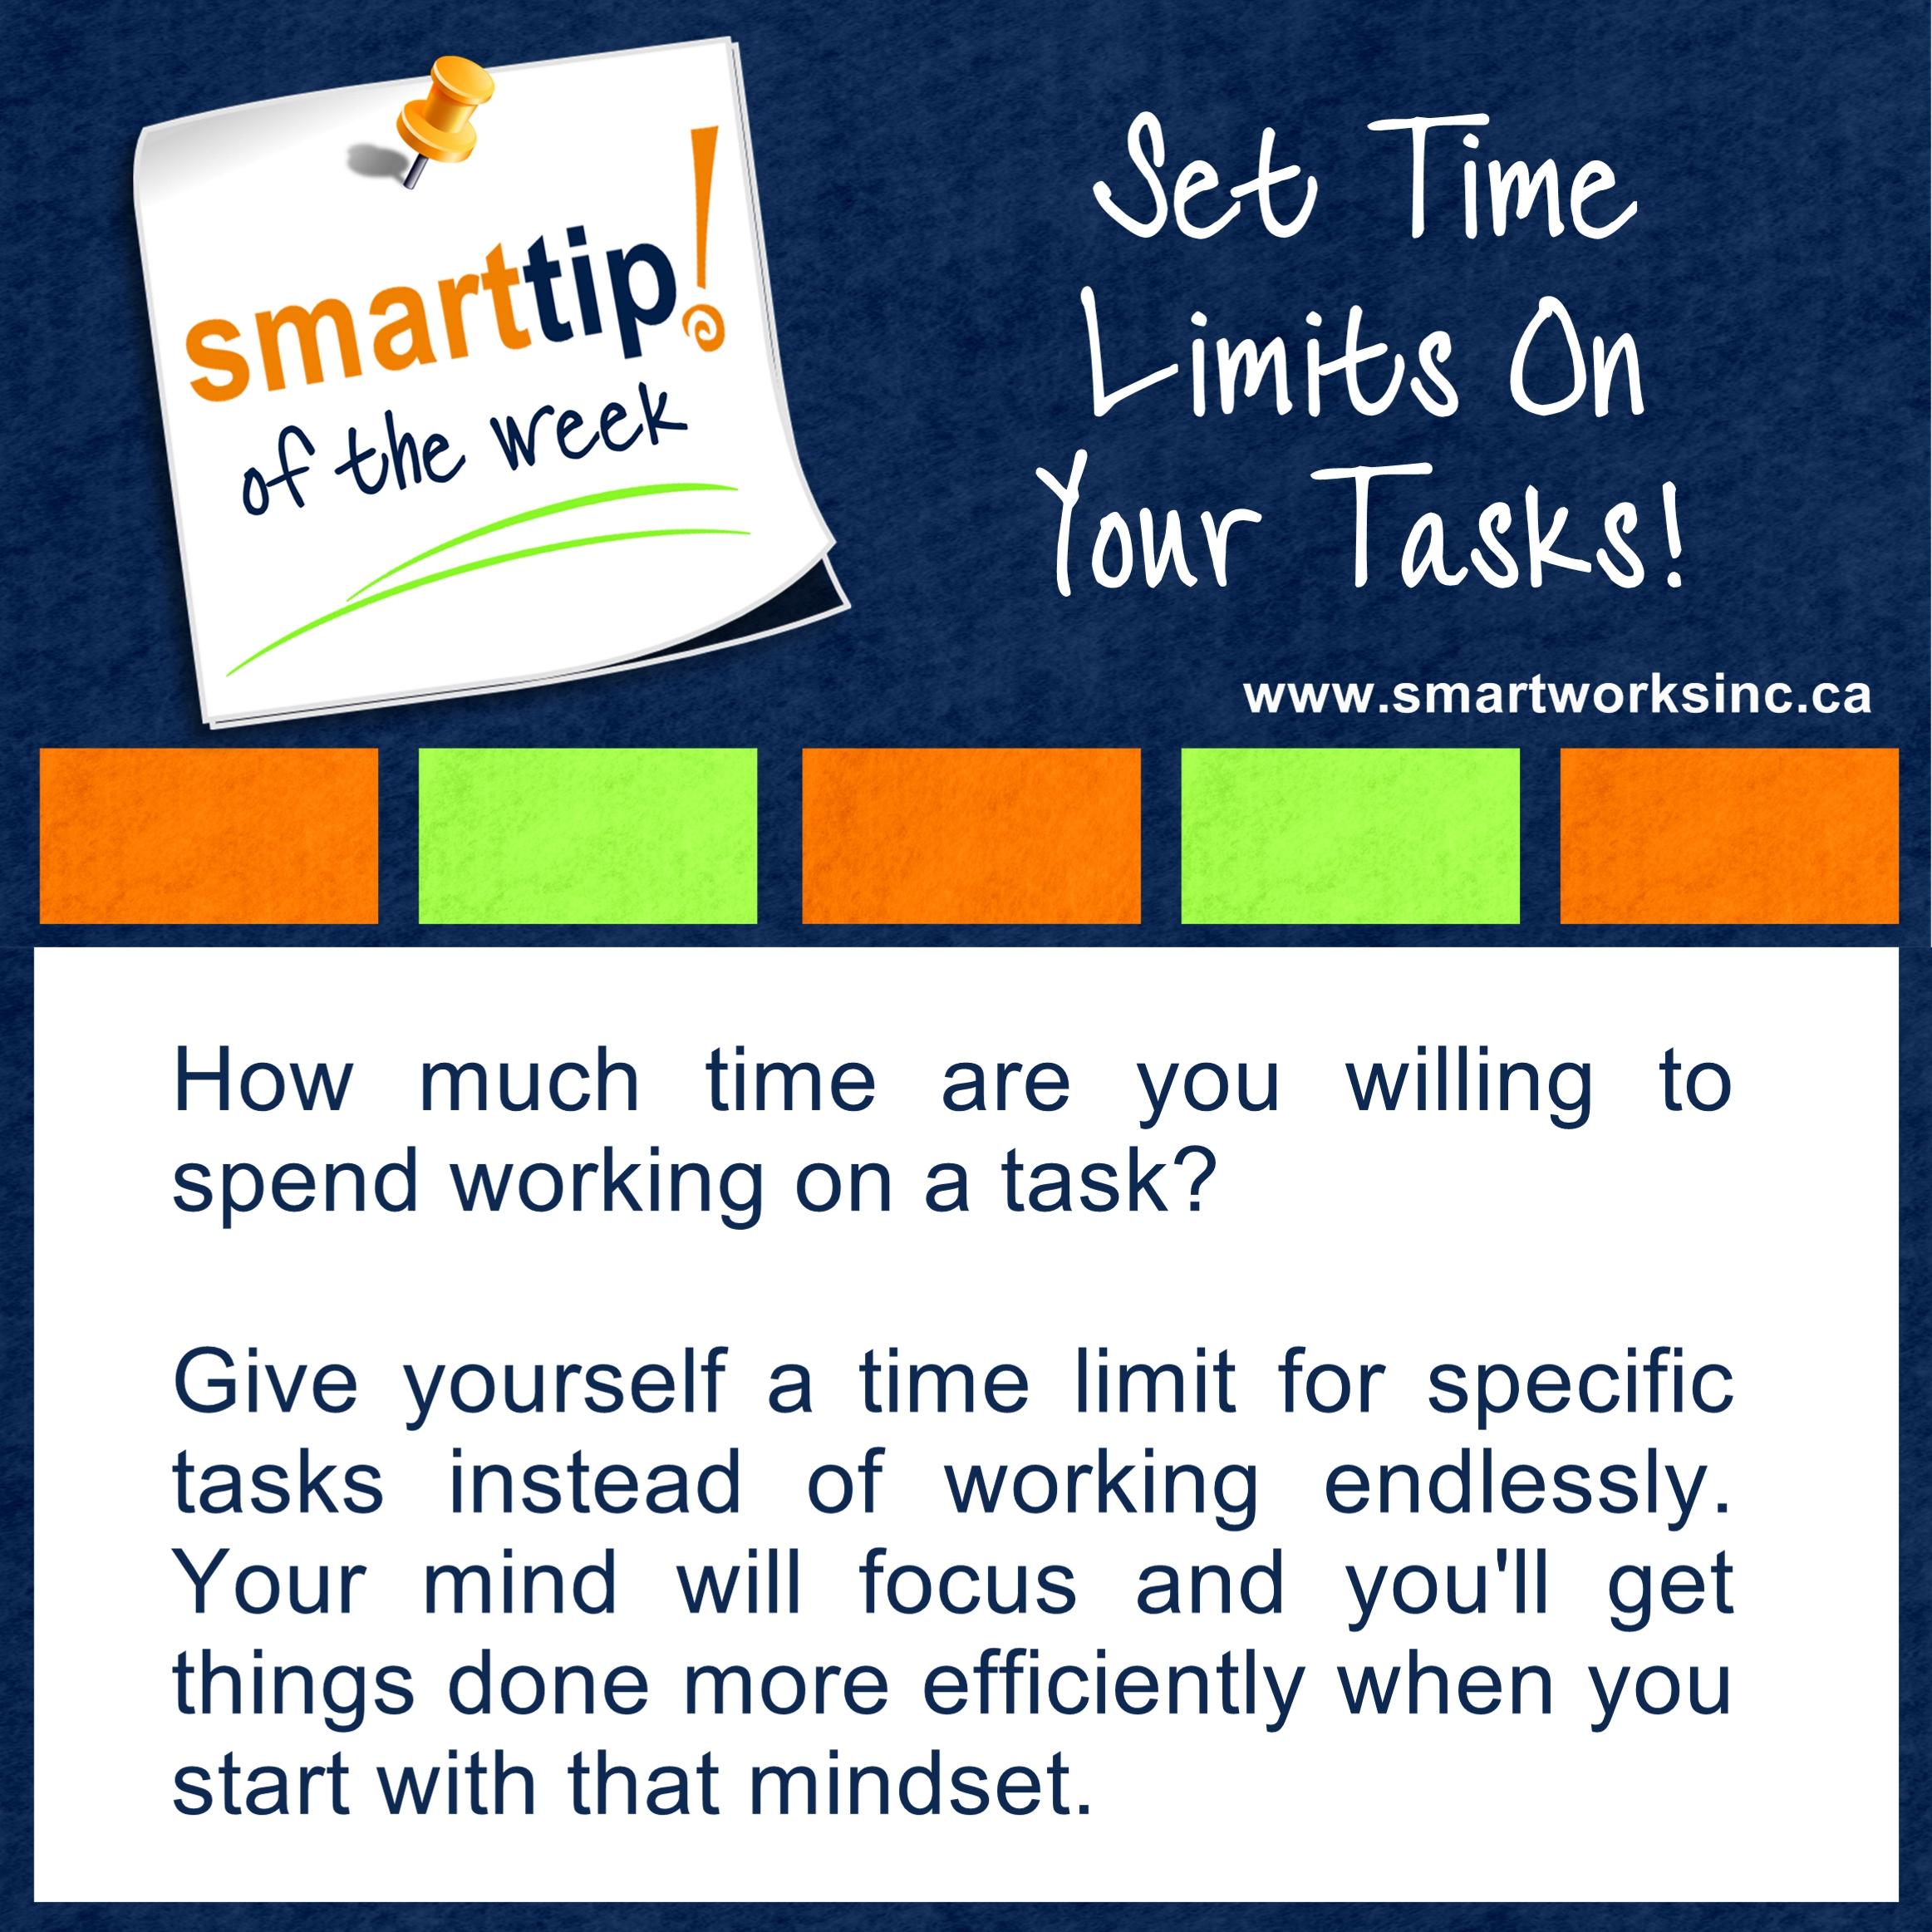 25 Set Time Limits On Your Tasks